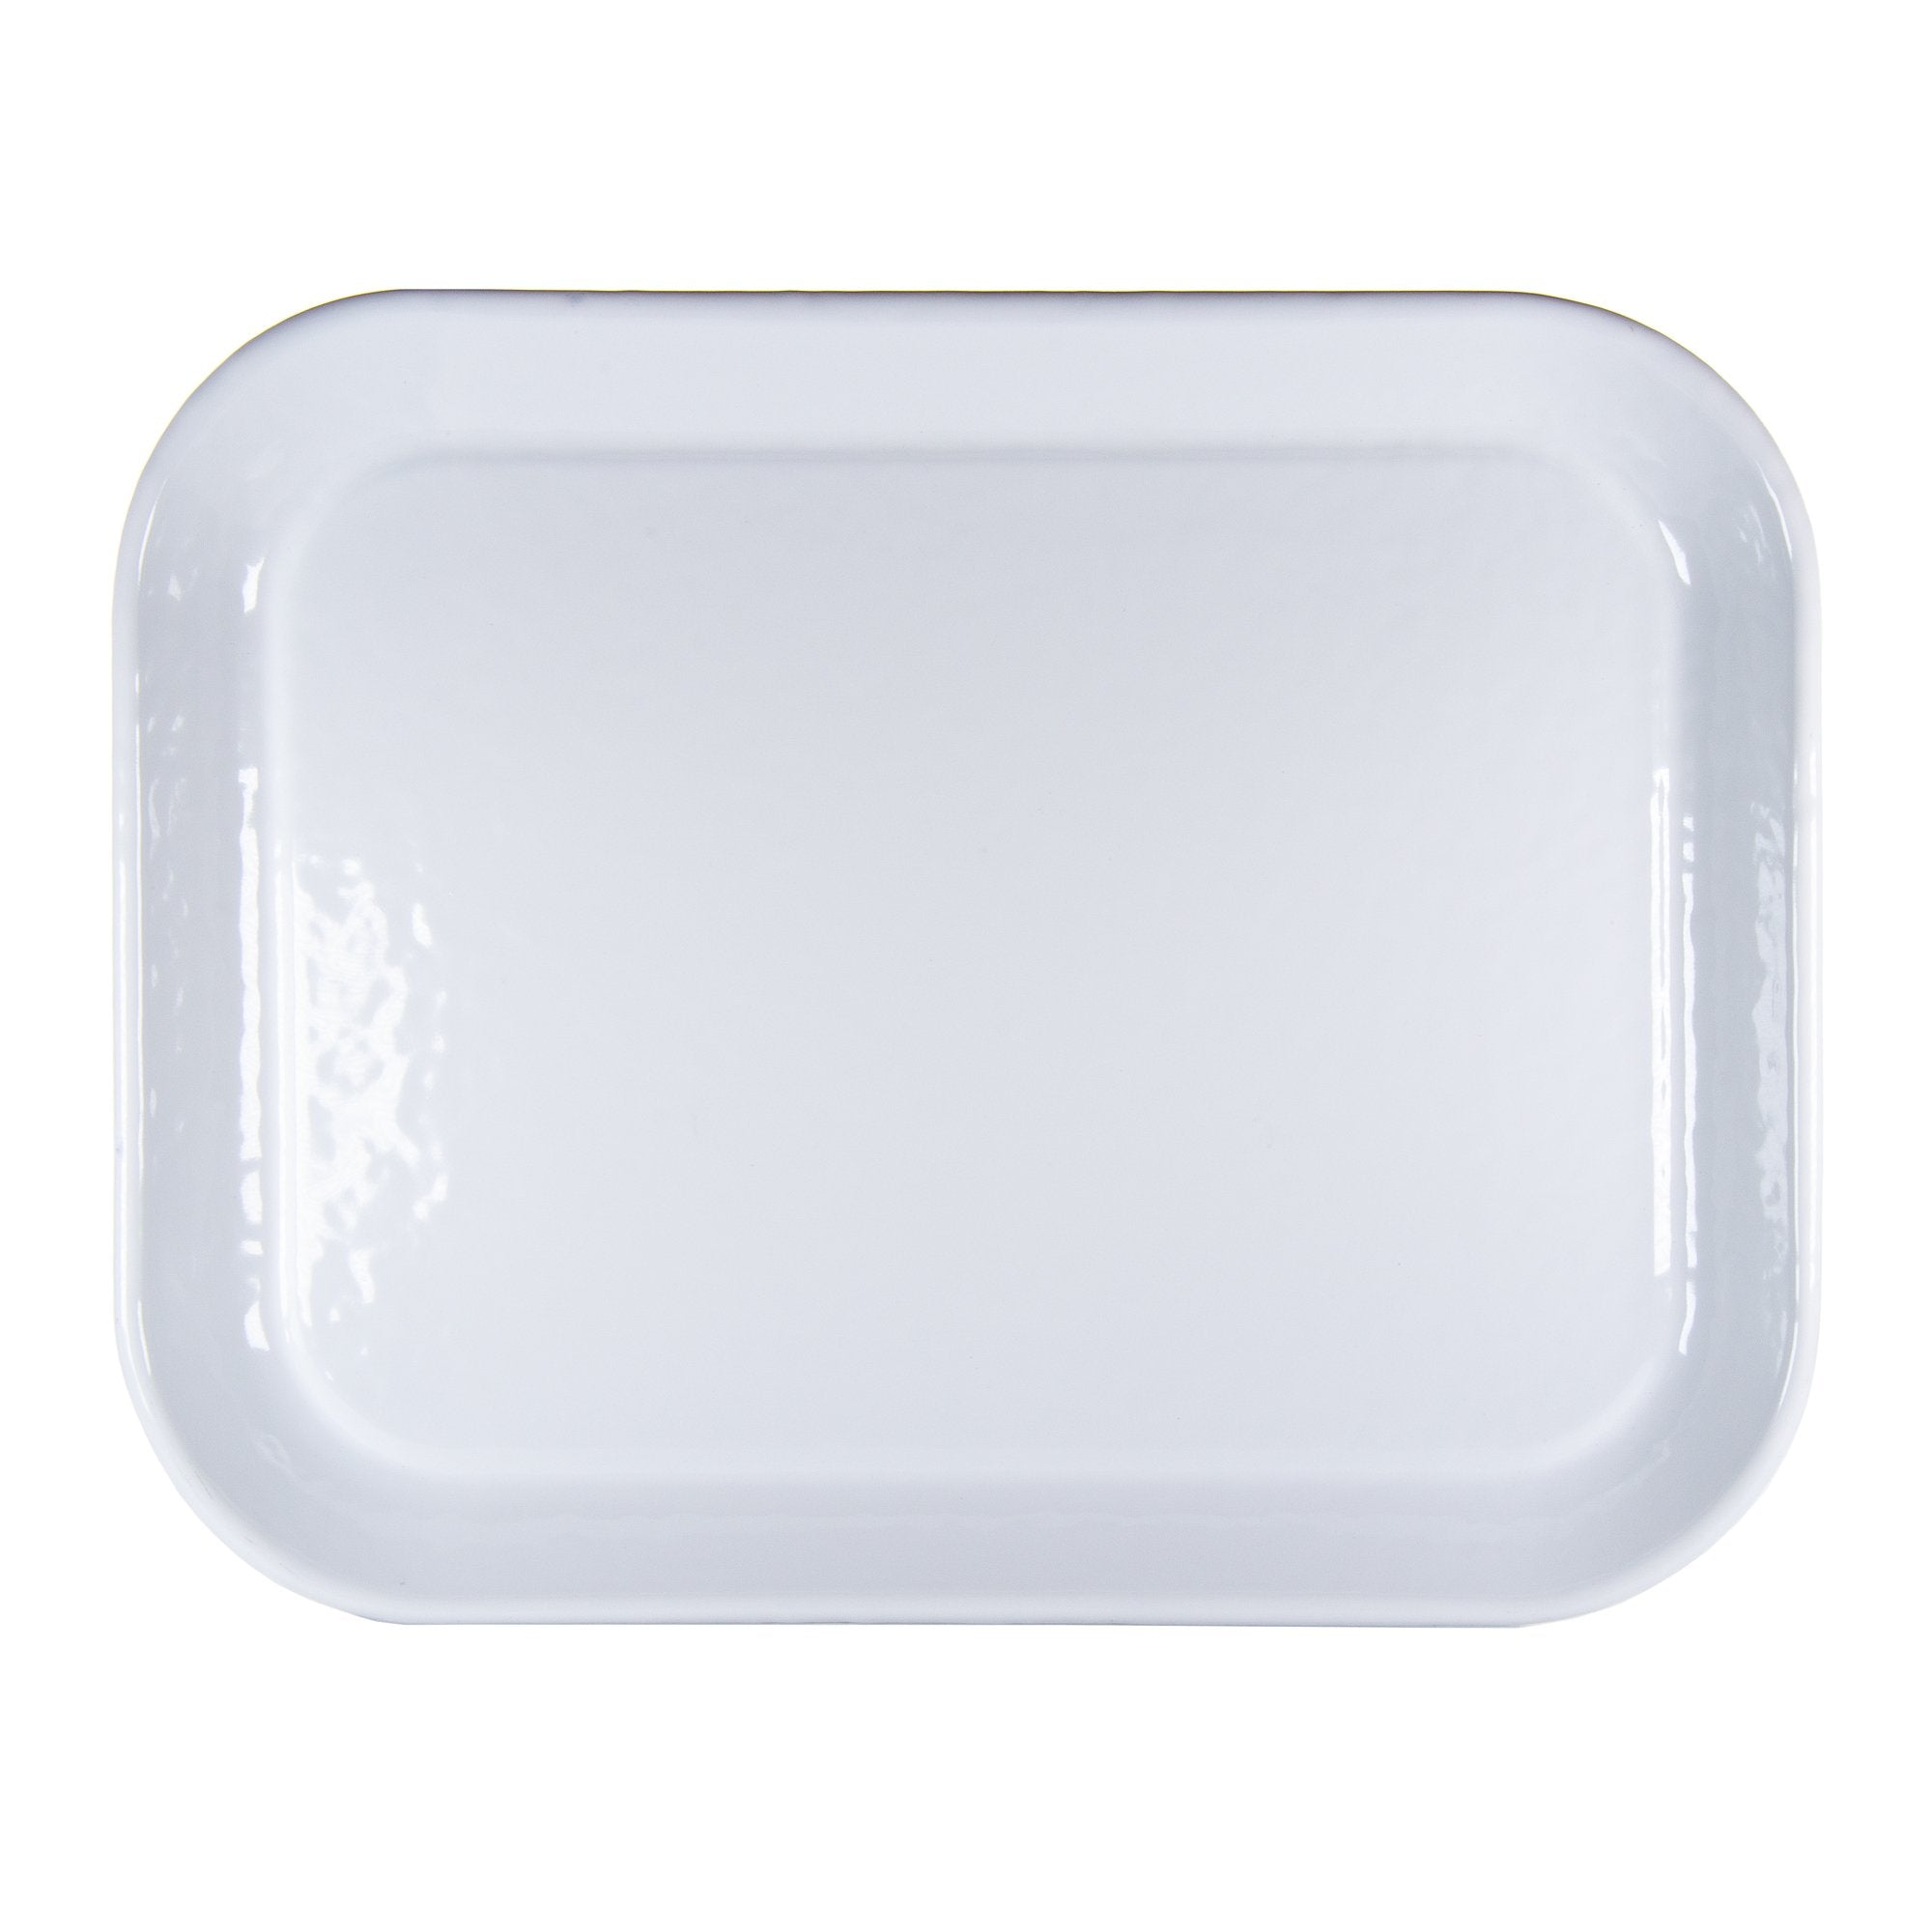 WW98 - White on White -  Enamelware Half Sheet Tray by Golden Rabbit